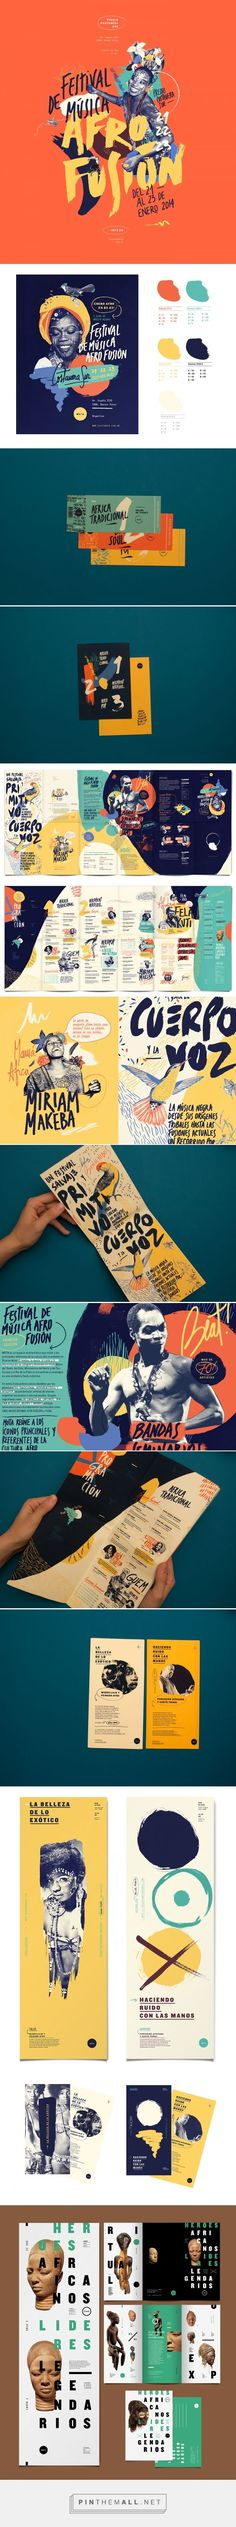 Full graphic identity development for an afro-fusion festival done in Buenos Aires, Argentina.